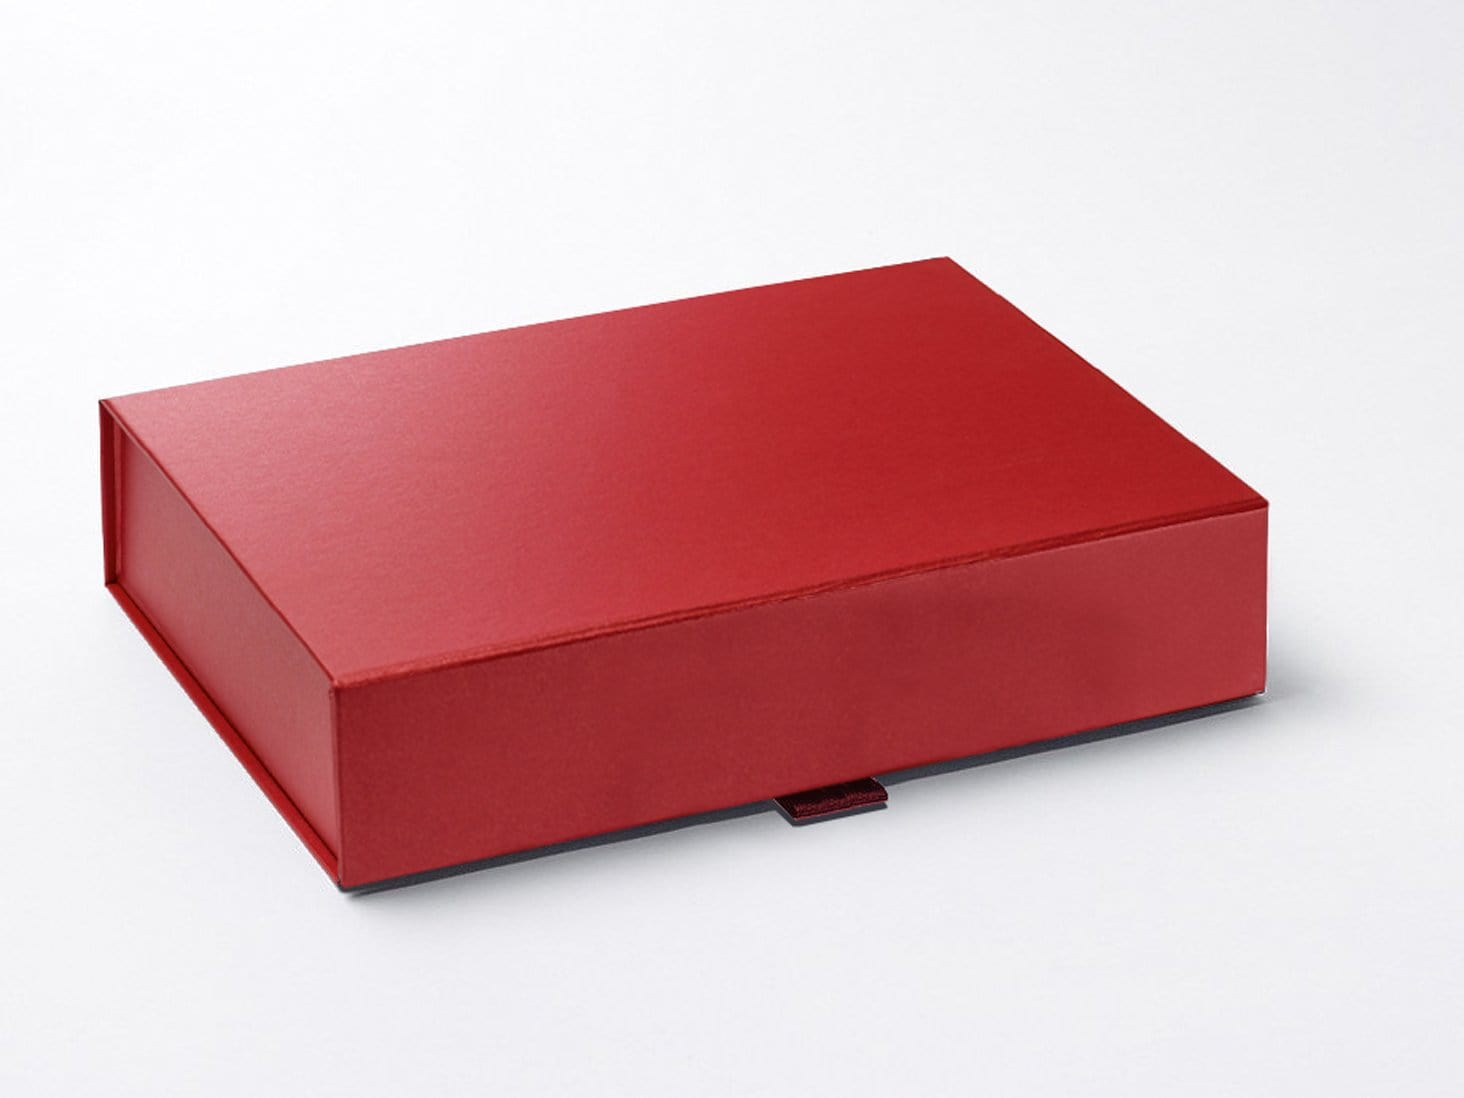 A4 Shallow Red Foldable Gift Boxes from Foldabox